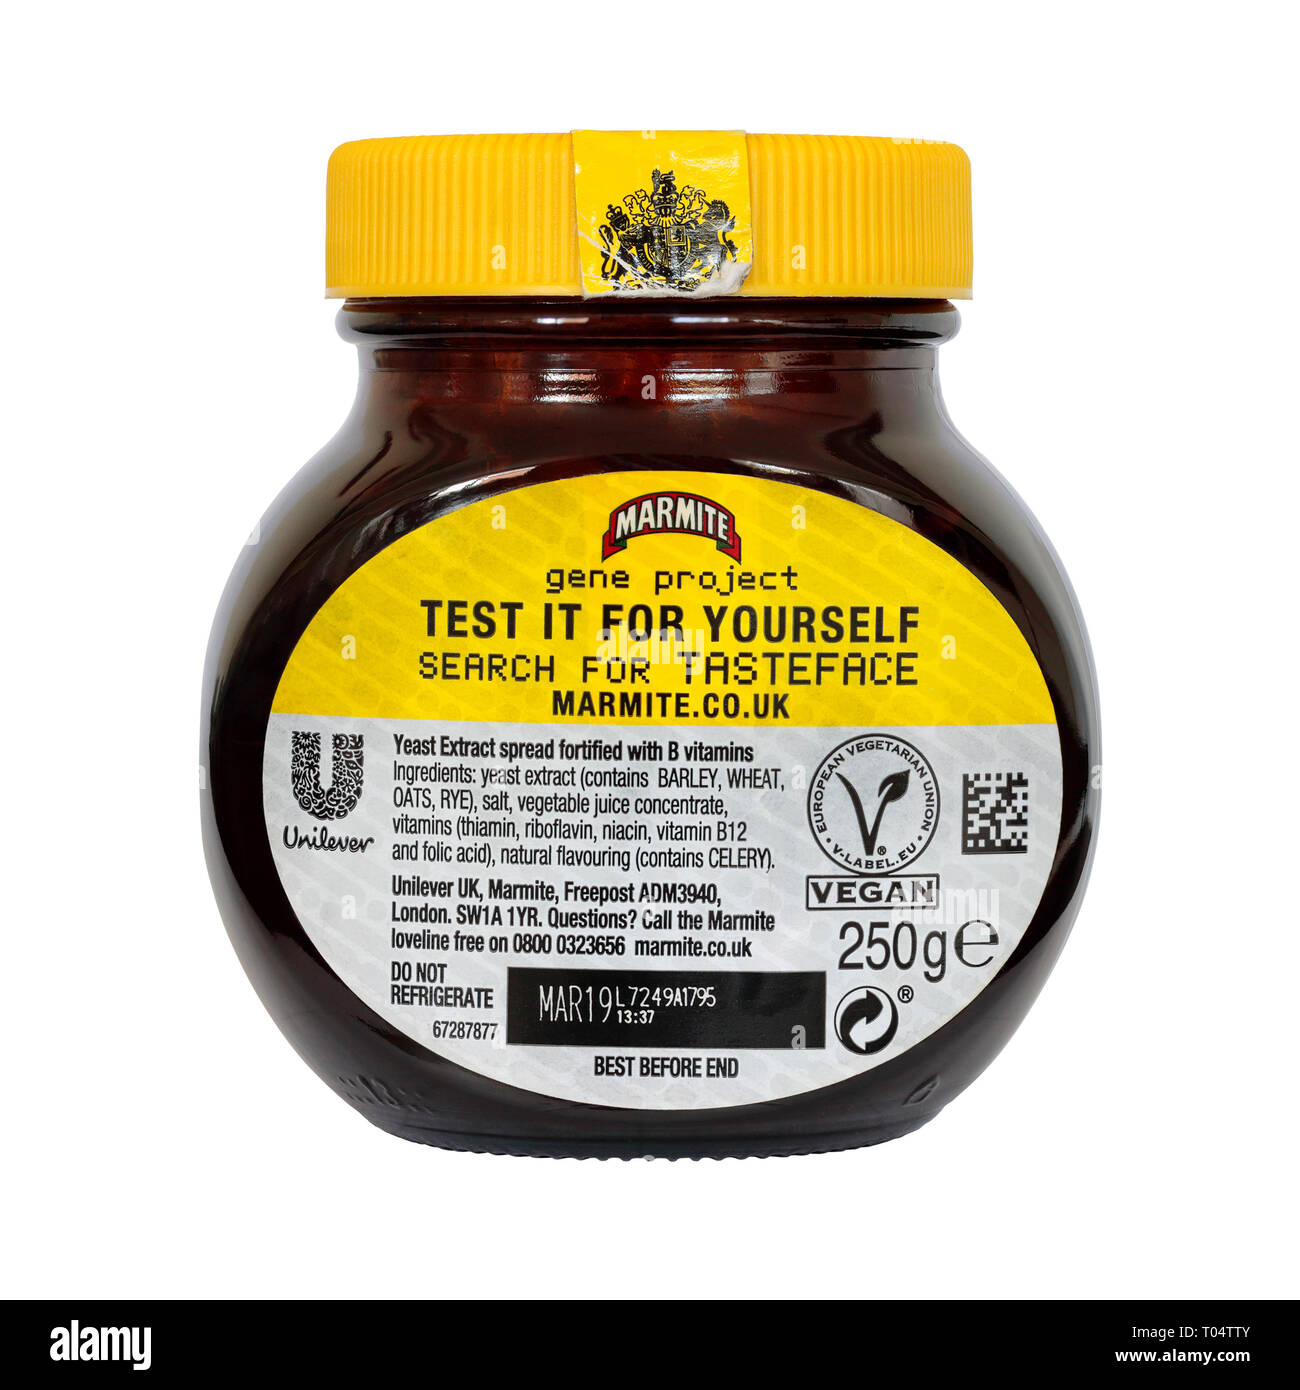 Rear View of a 250g Jar of Marmite gene project edition isolated on a white background with best before date and Unilever logo and vegan logo Stock Photo